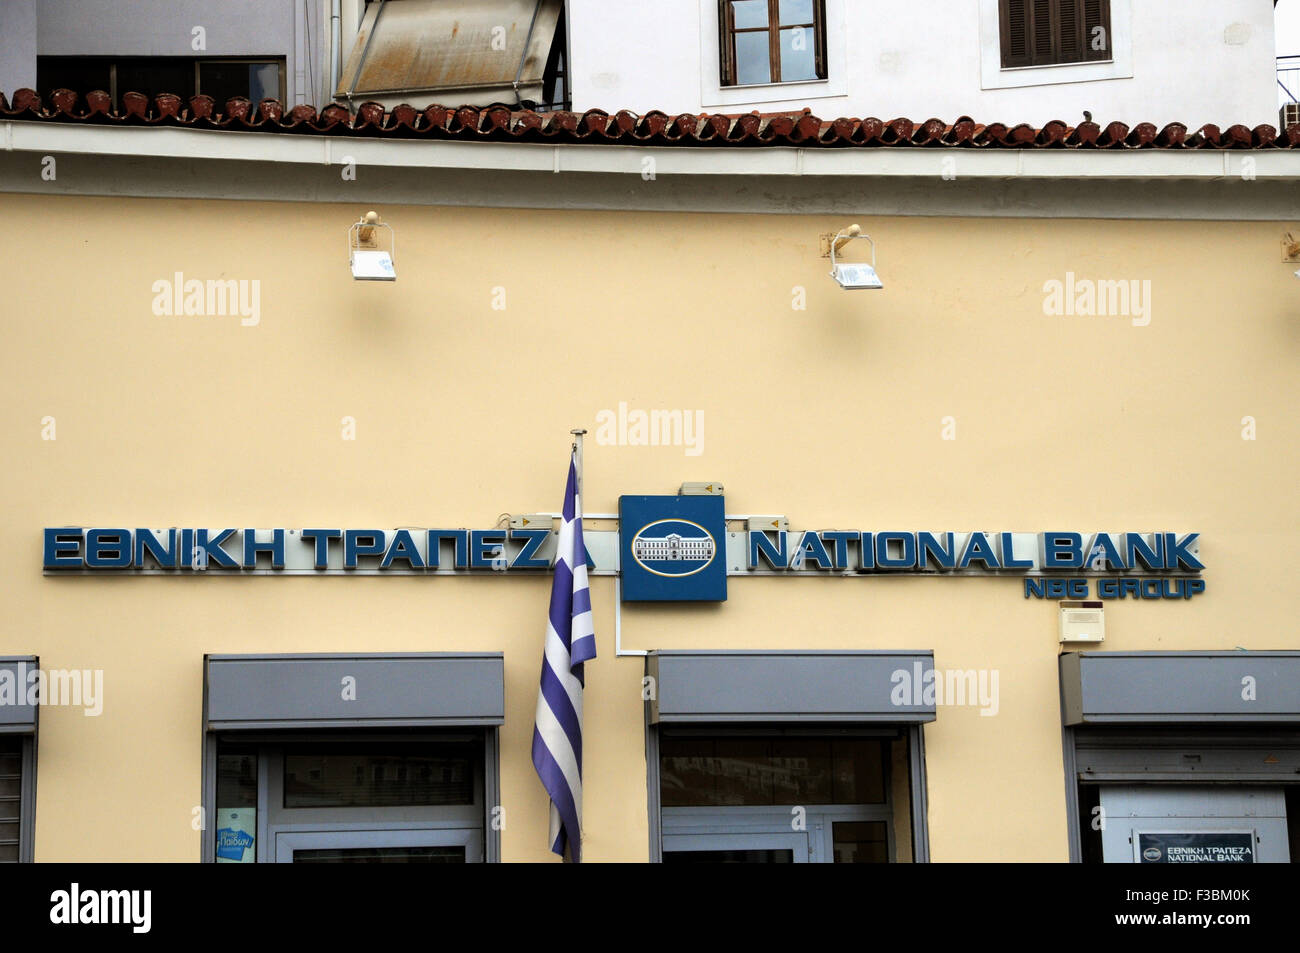 The National Bank of Greece. Shown here is its branch in the small town of Pilos (Pylos) in the Peloponnese. - Stock Image